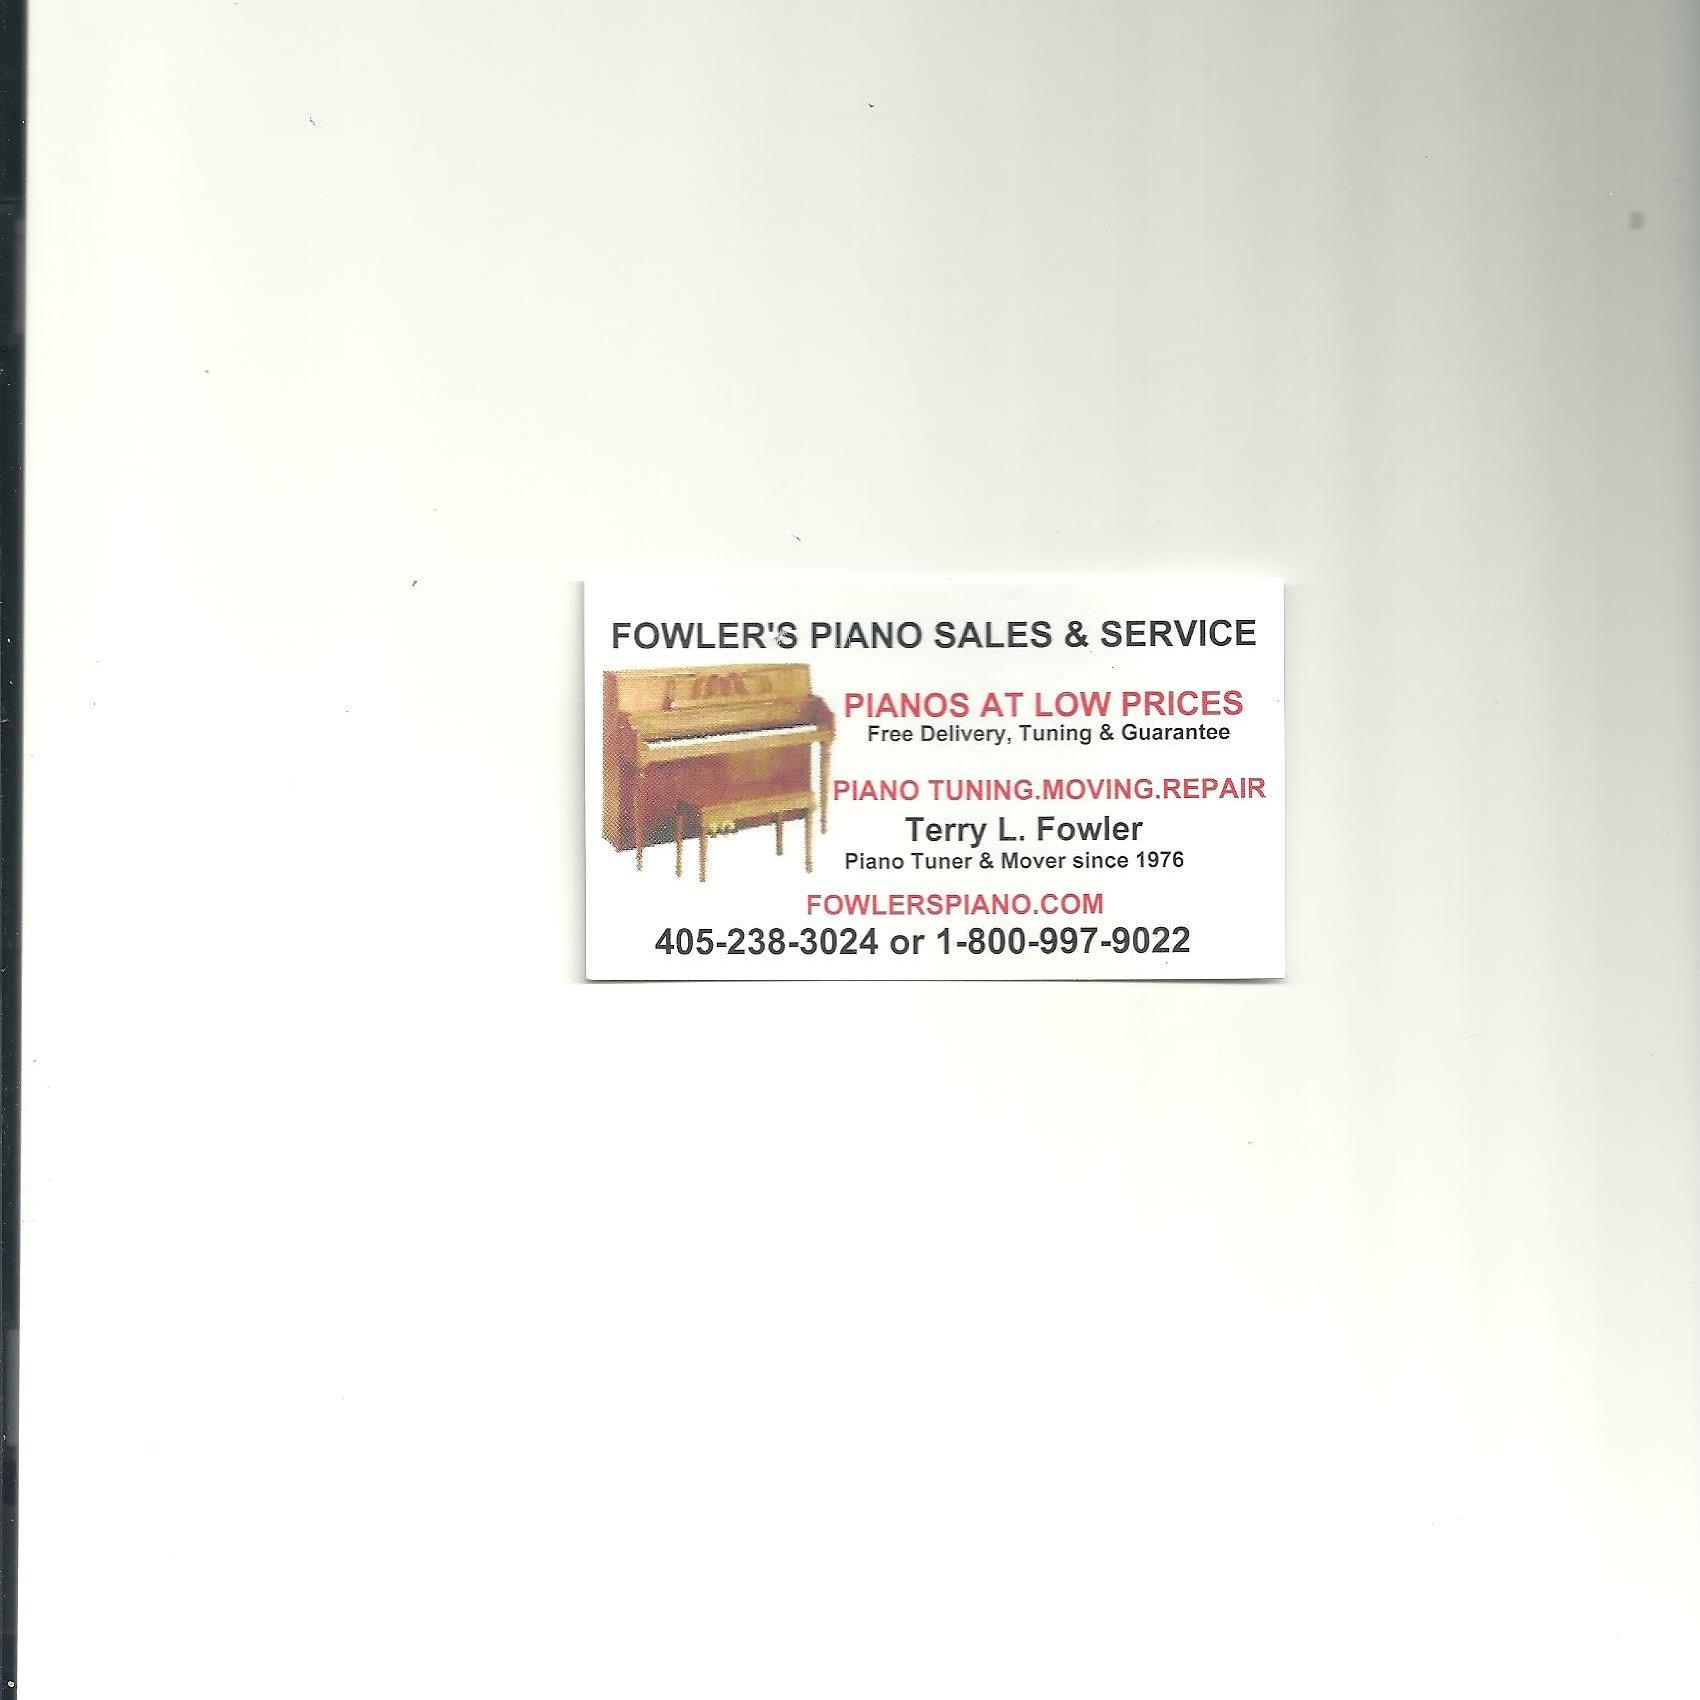 Fowler's Piano Sales and Service